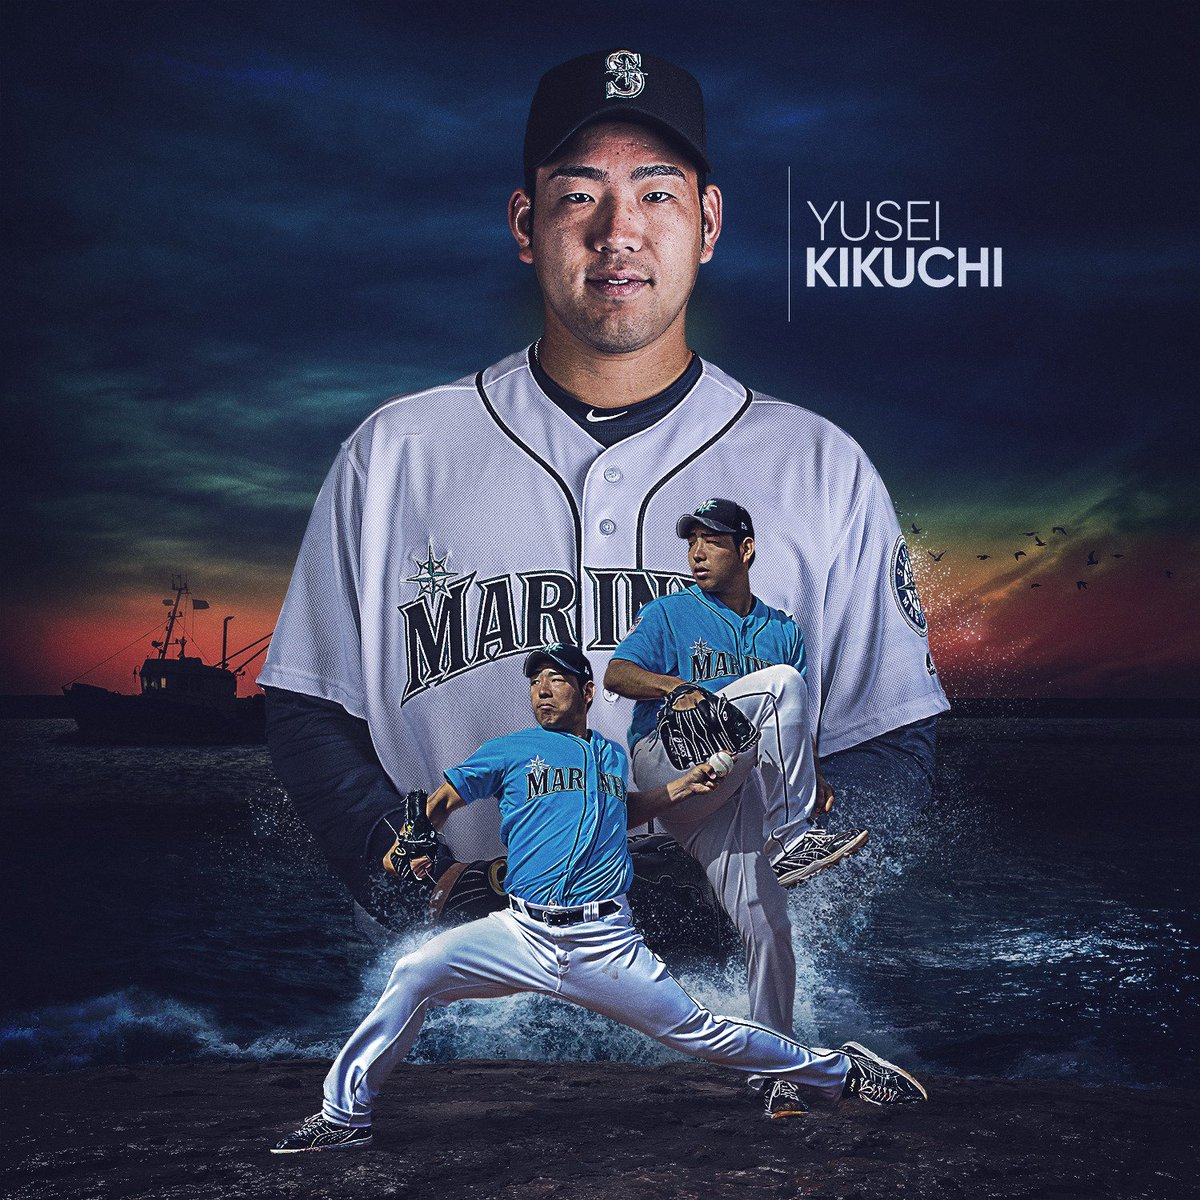 MLB's photo on Kikuchi